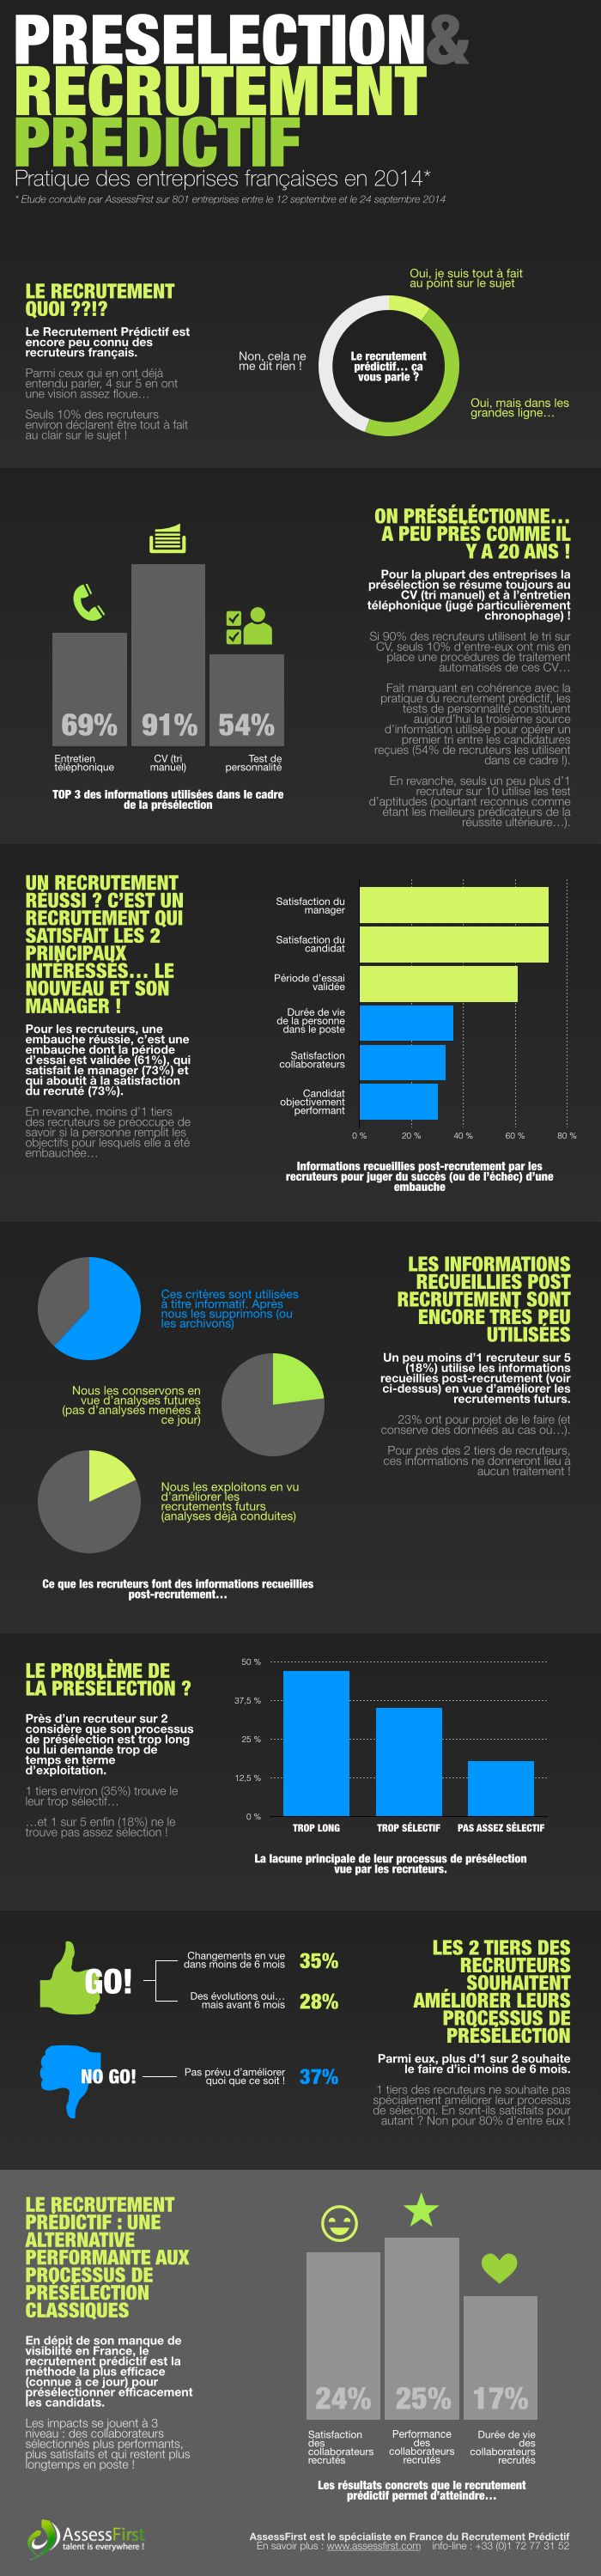 infographie-recrutement-predictif-assessfirst-long